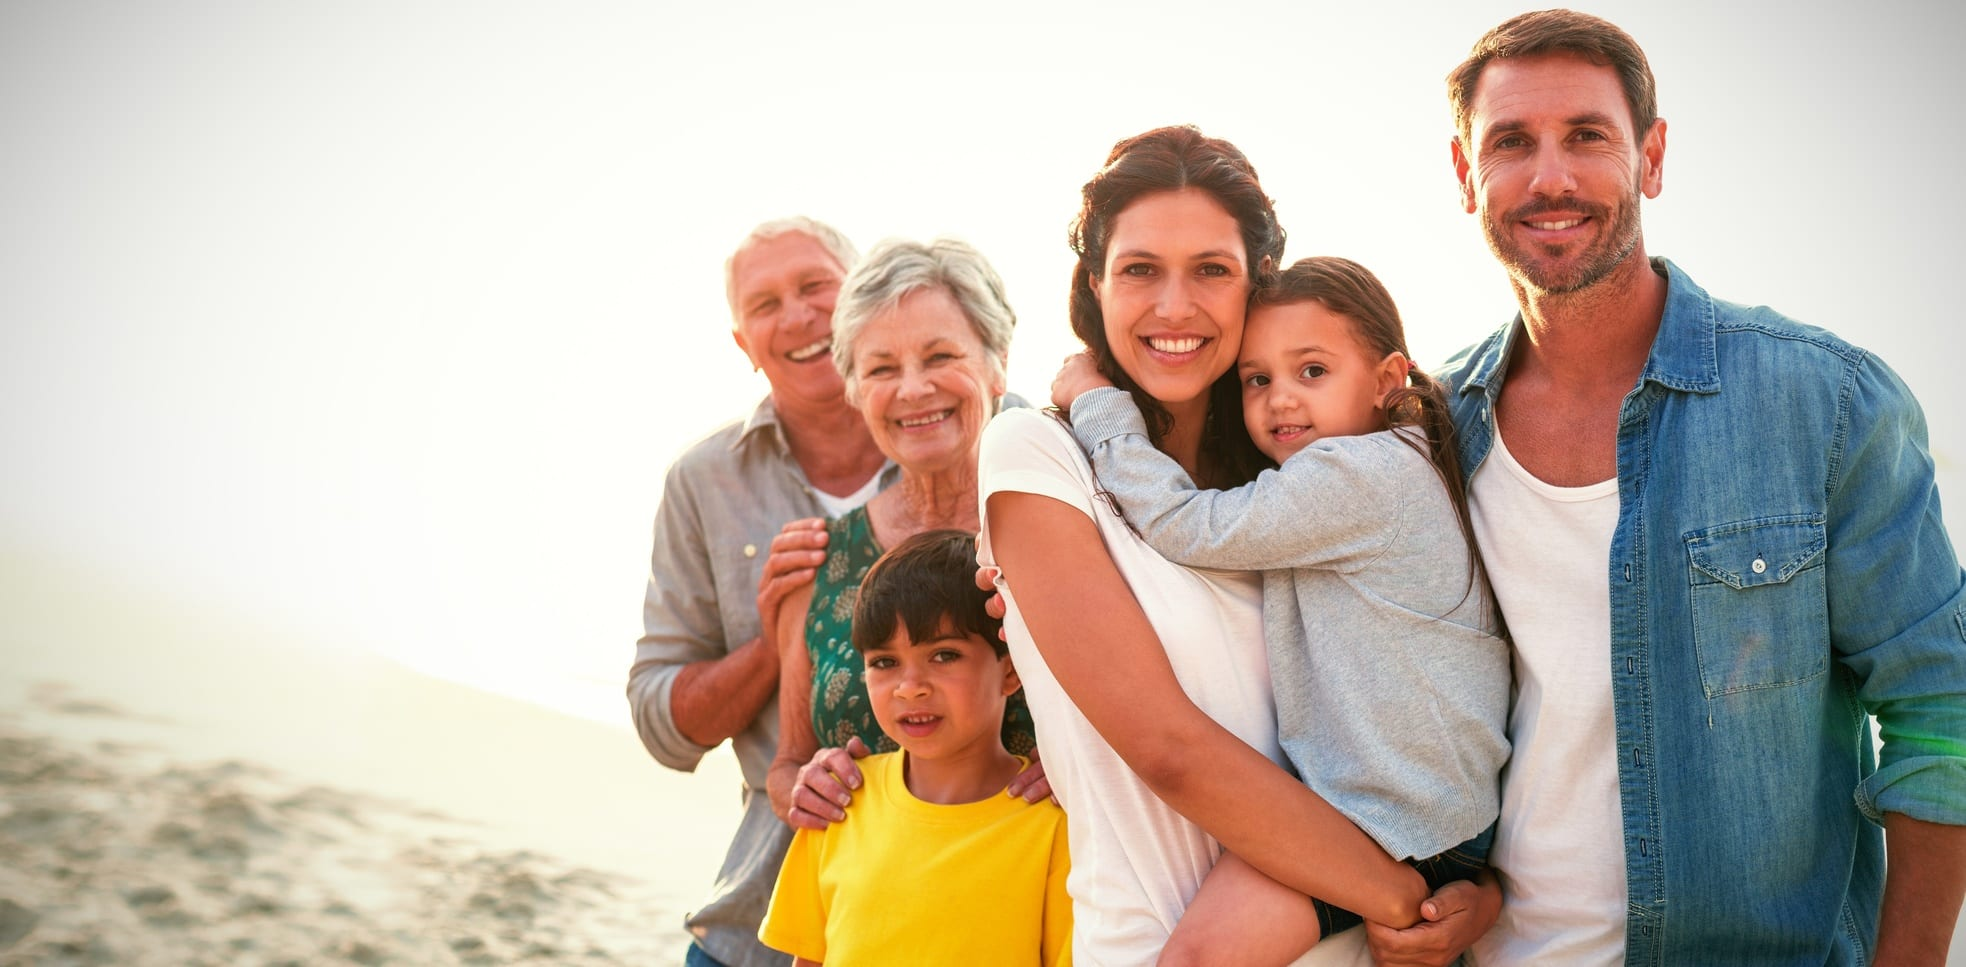 Obamacare Open Enrollment to protect family members